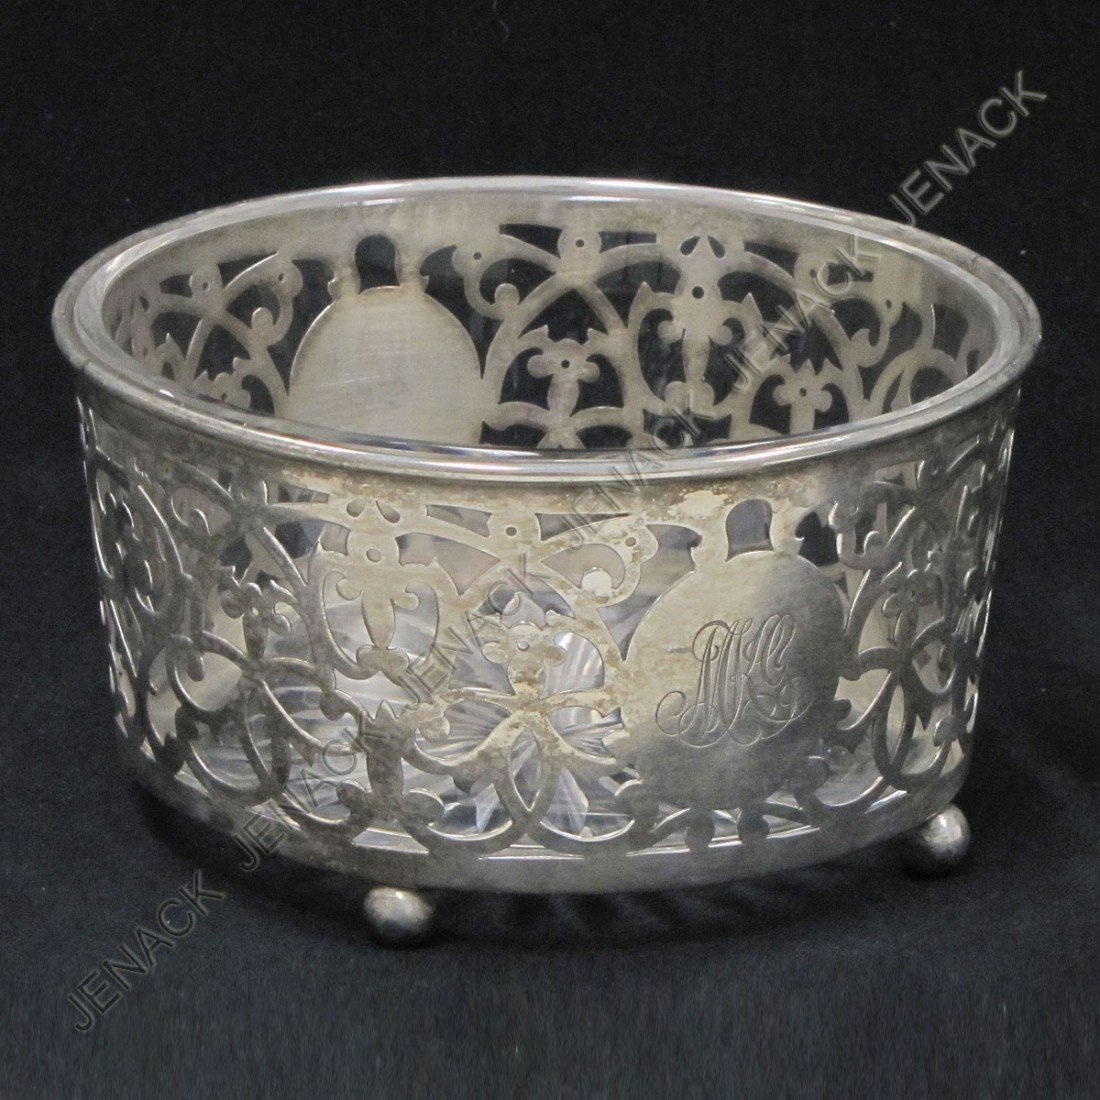 14: GORHAM STERLING AND CUT GLASS FOOTED SERVING DISH